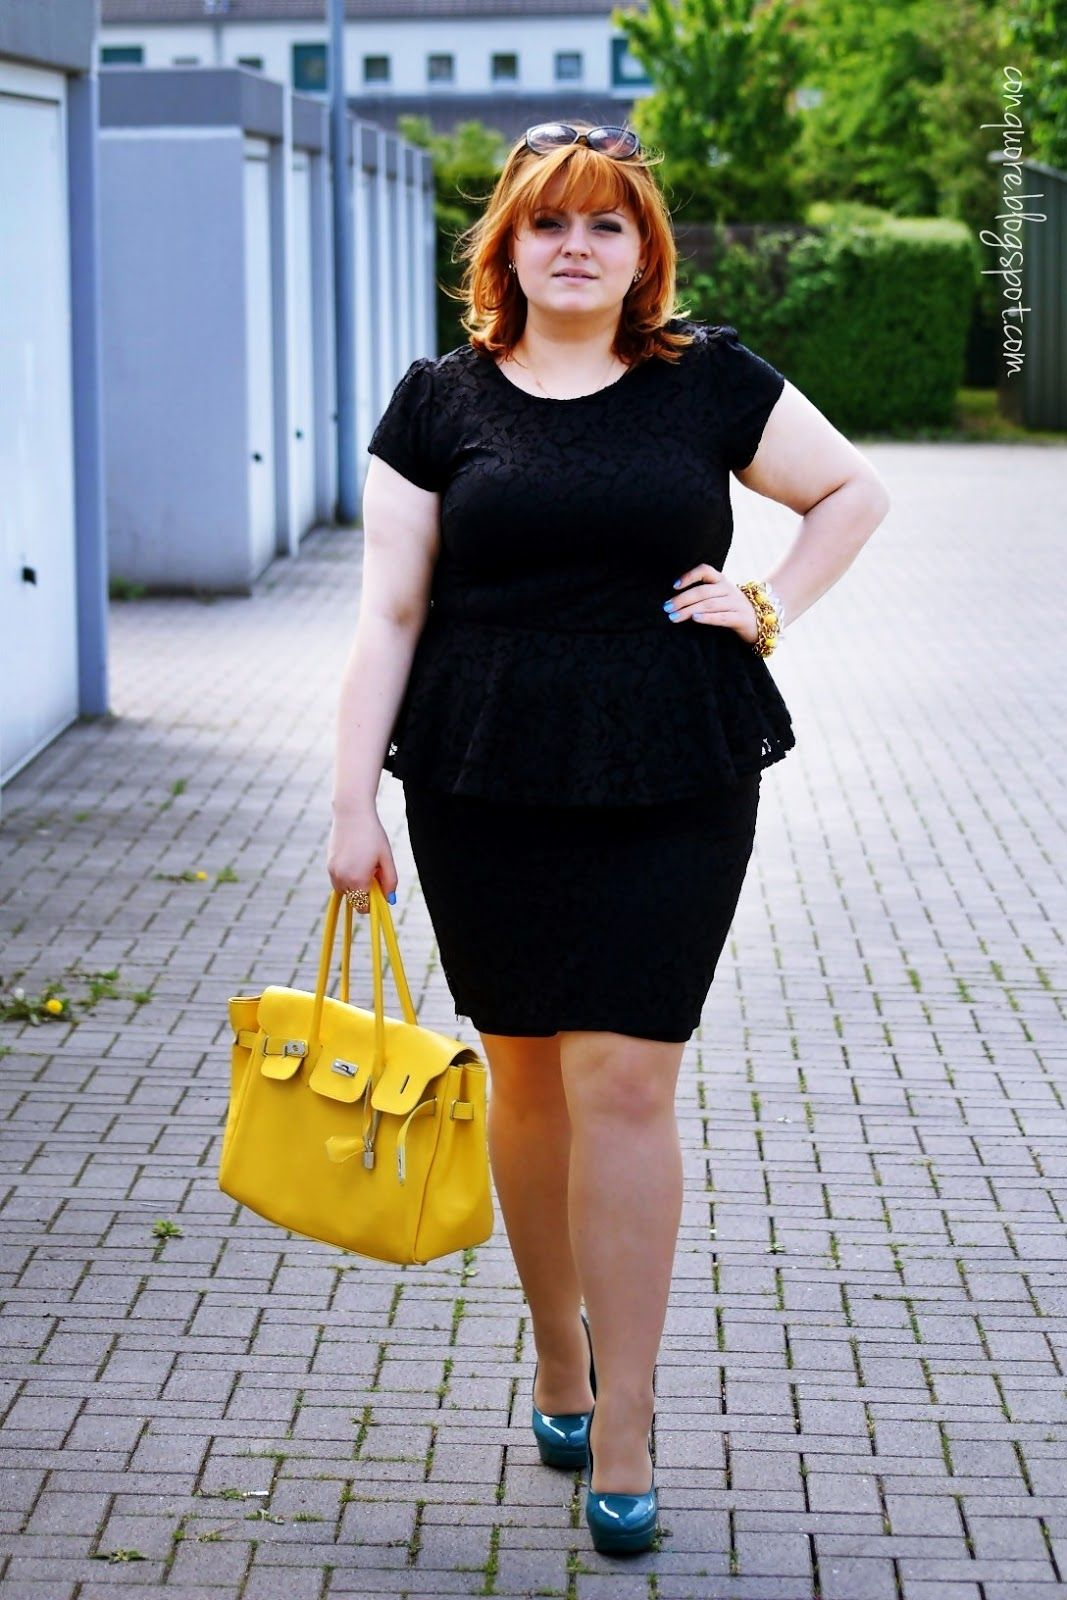 Details without a blazer!  Let me be your inspiration for elegant plus size and curvy fashion! ConQuore - with heart for plus sizes and inbetweenies!     http://conquore.blogspot.de/2013/05/sunday-outfit.html     #plussize #curvy